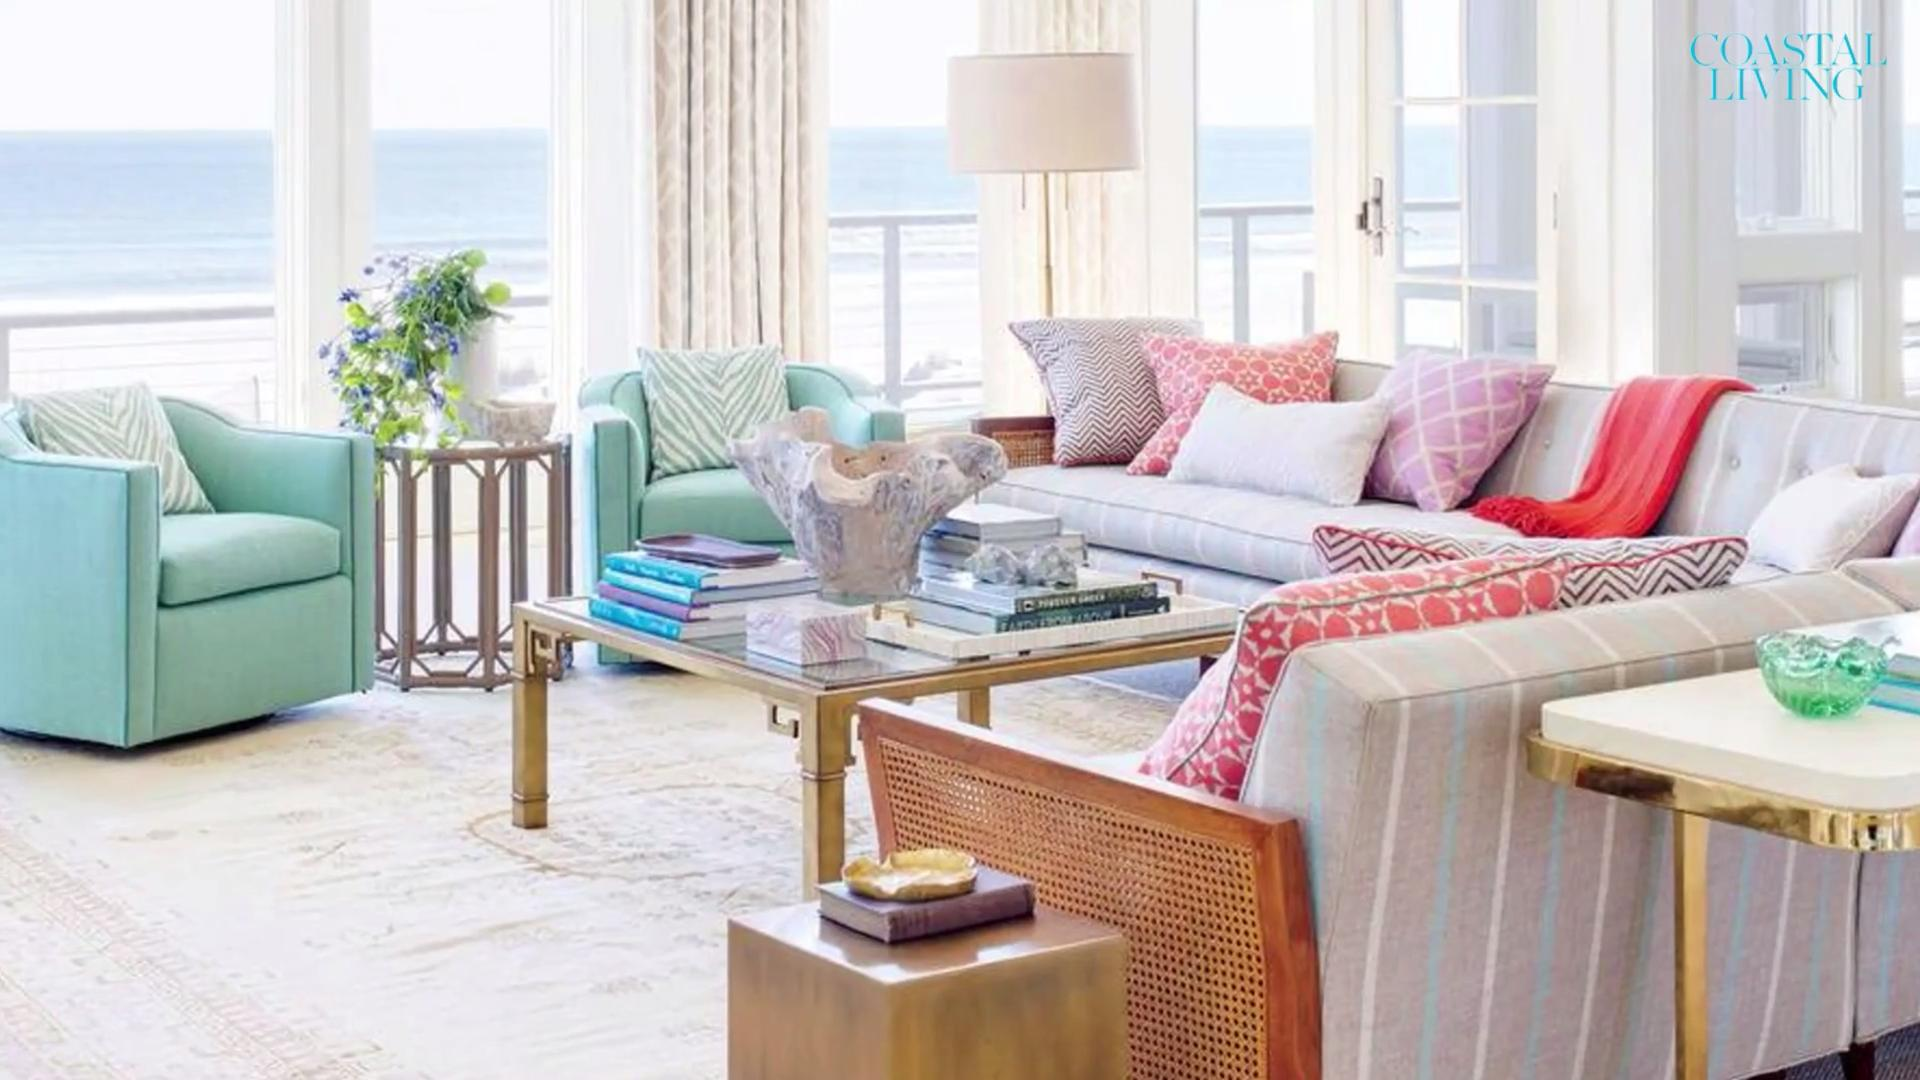 48 beautiful beachy living rooms coastal livingthese living rooms have bright, coastal style